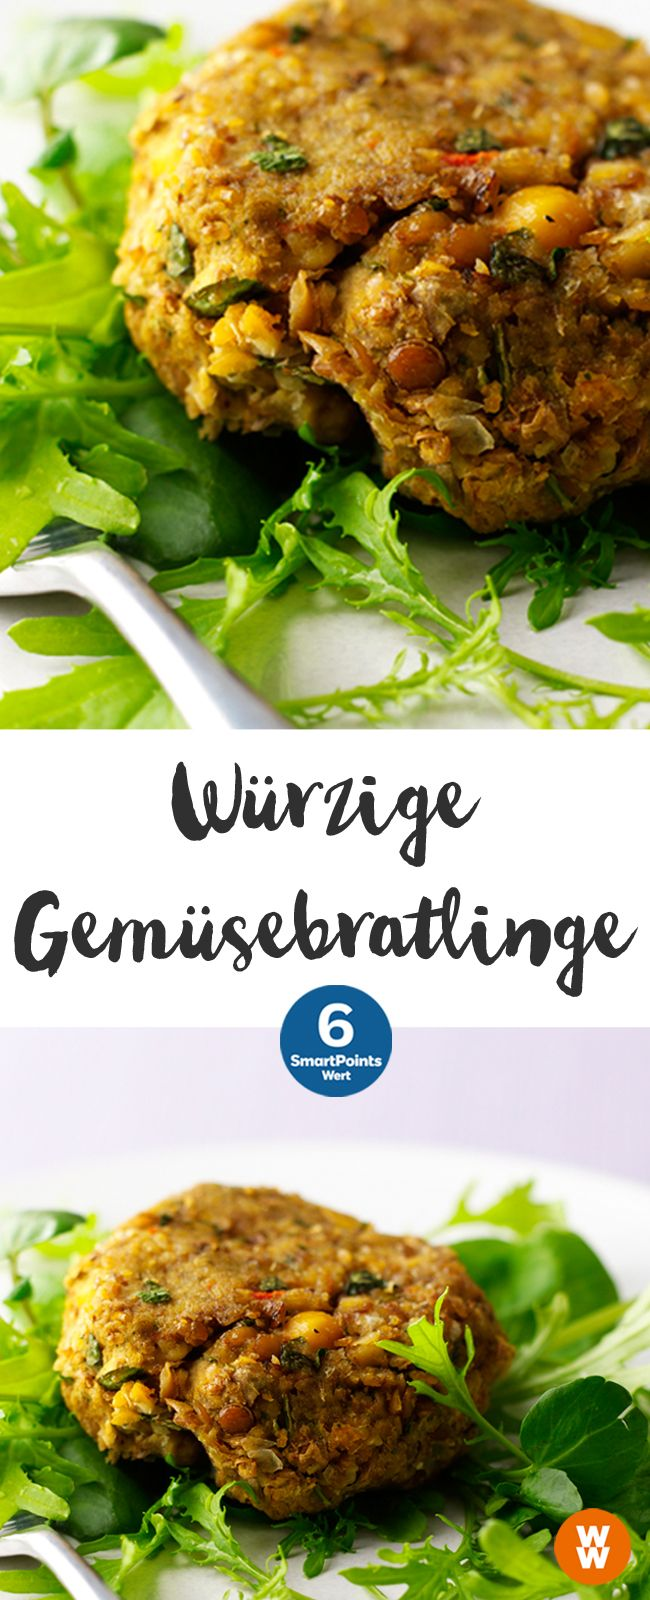 Würzige Gemüsebratlinge | 4 Portionen, 6 SmartPoints/Portion, Weight Watchers, fertig in 40 min.